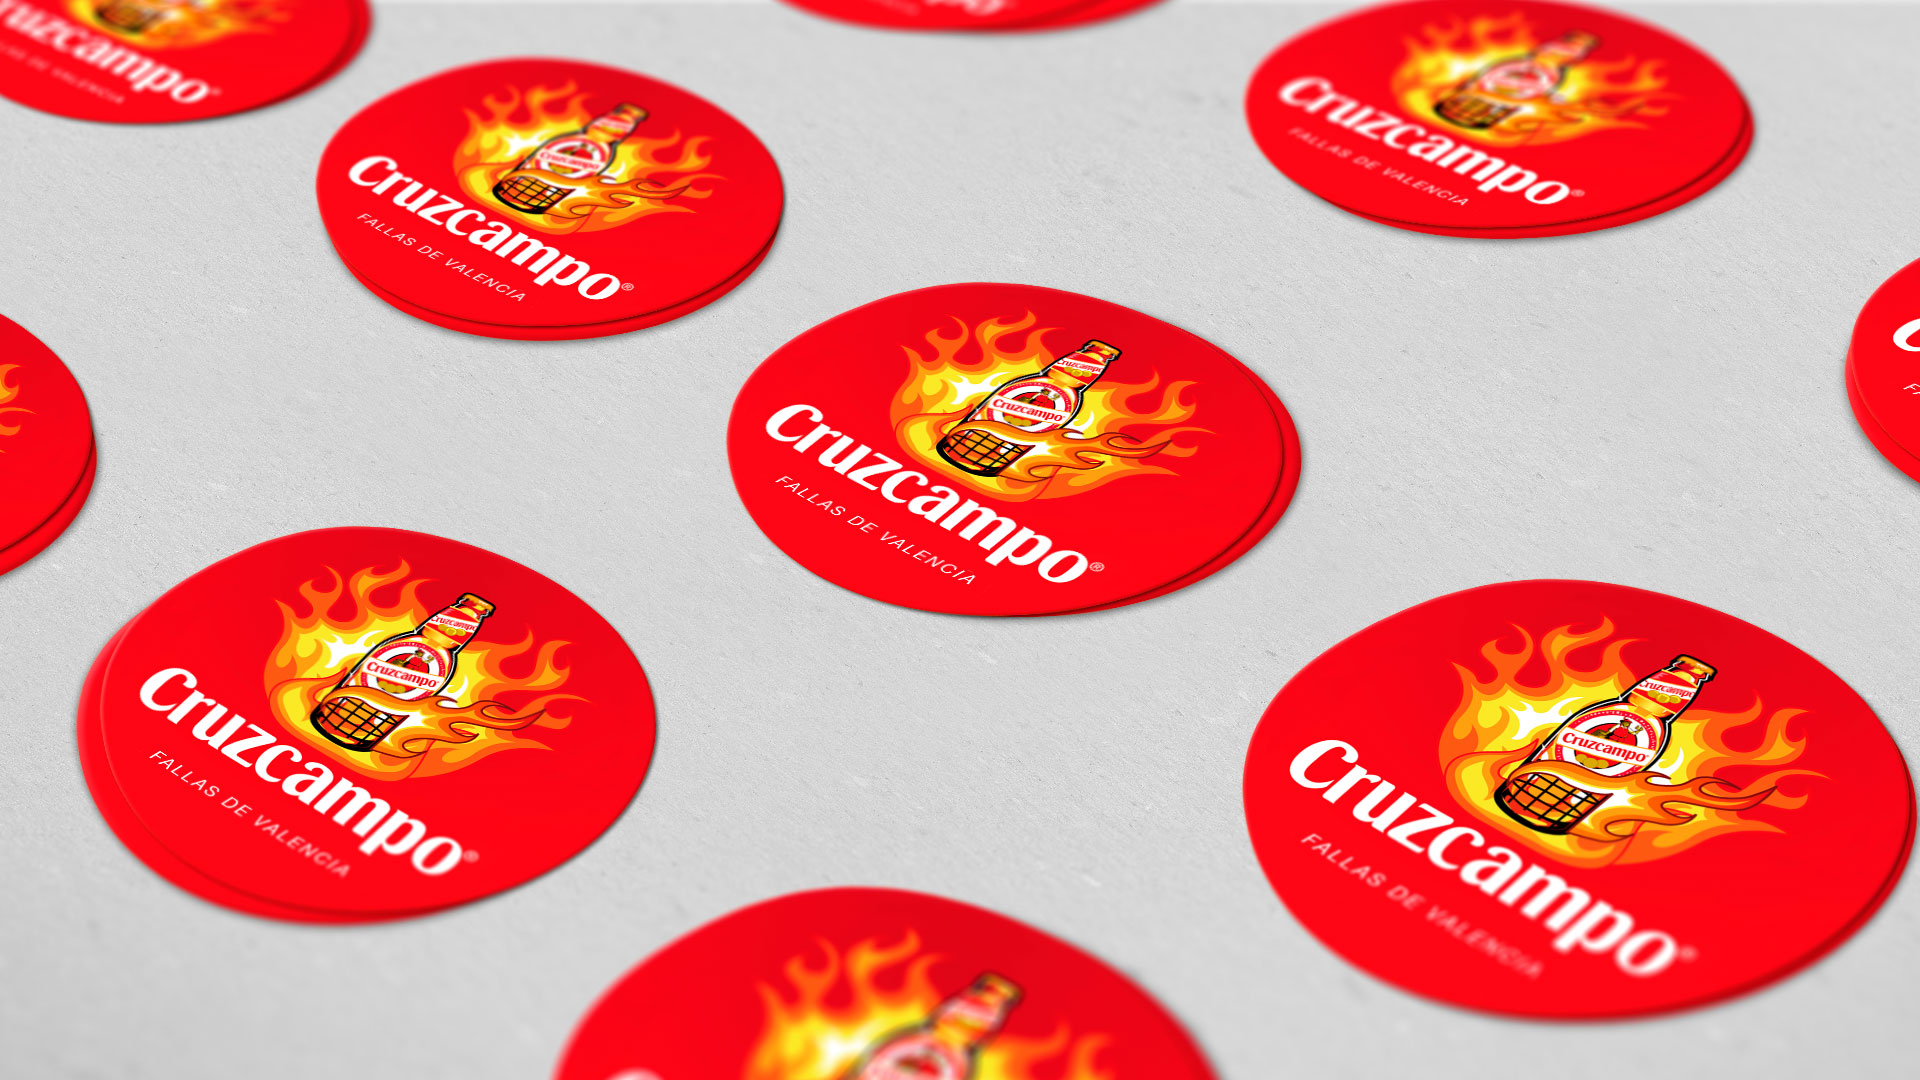 4_advertising_design_graphic_cruzcampo_fallas